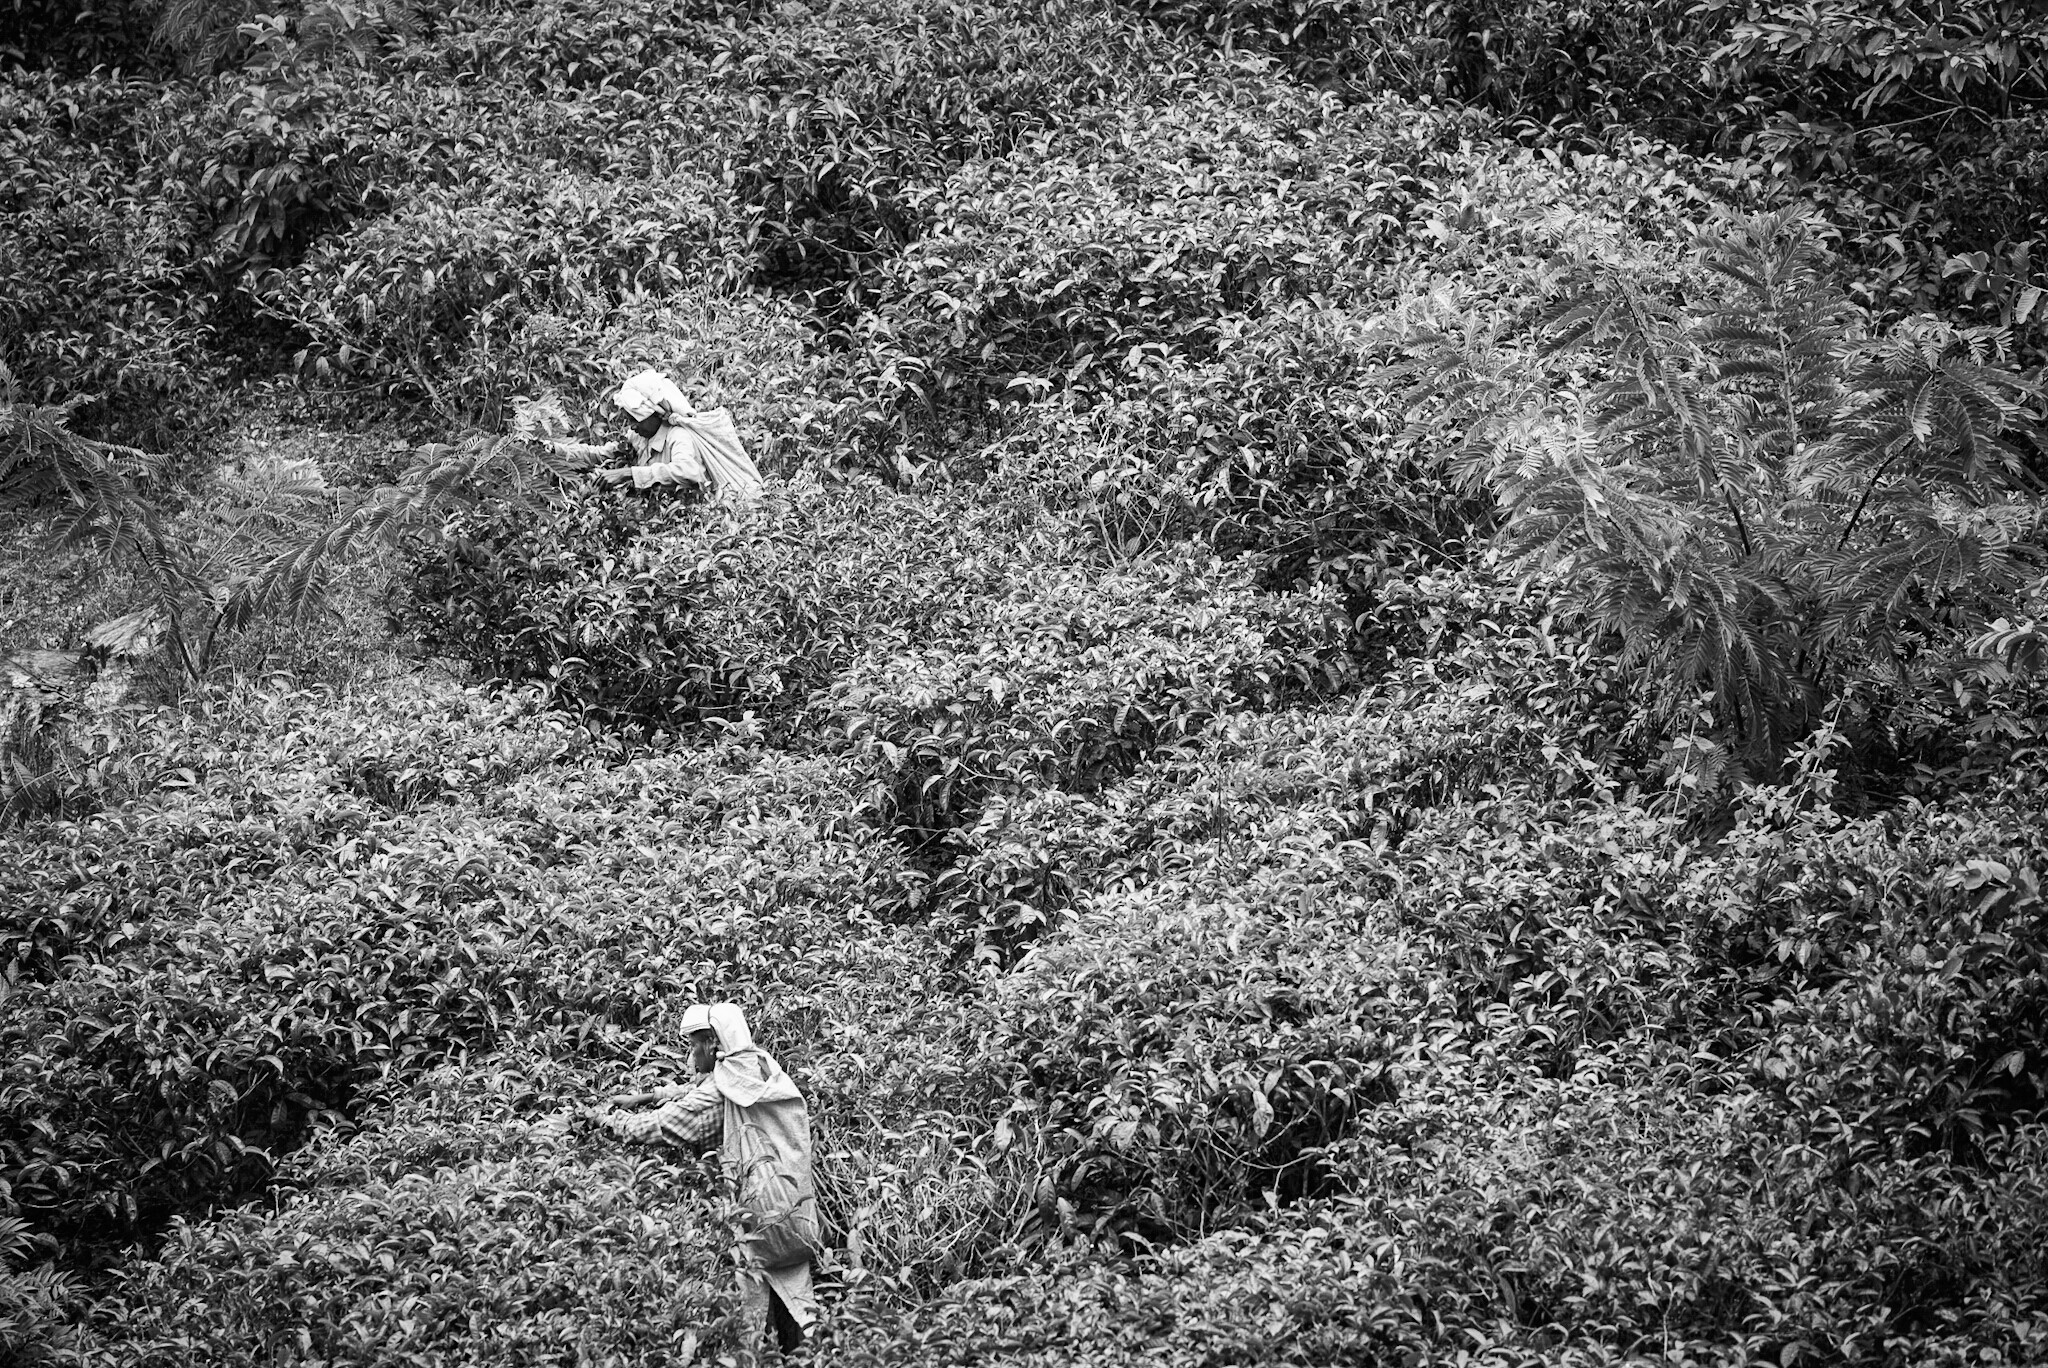 Tea picking in Ella, Sri Lanka